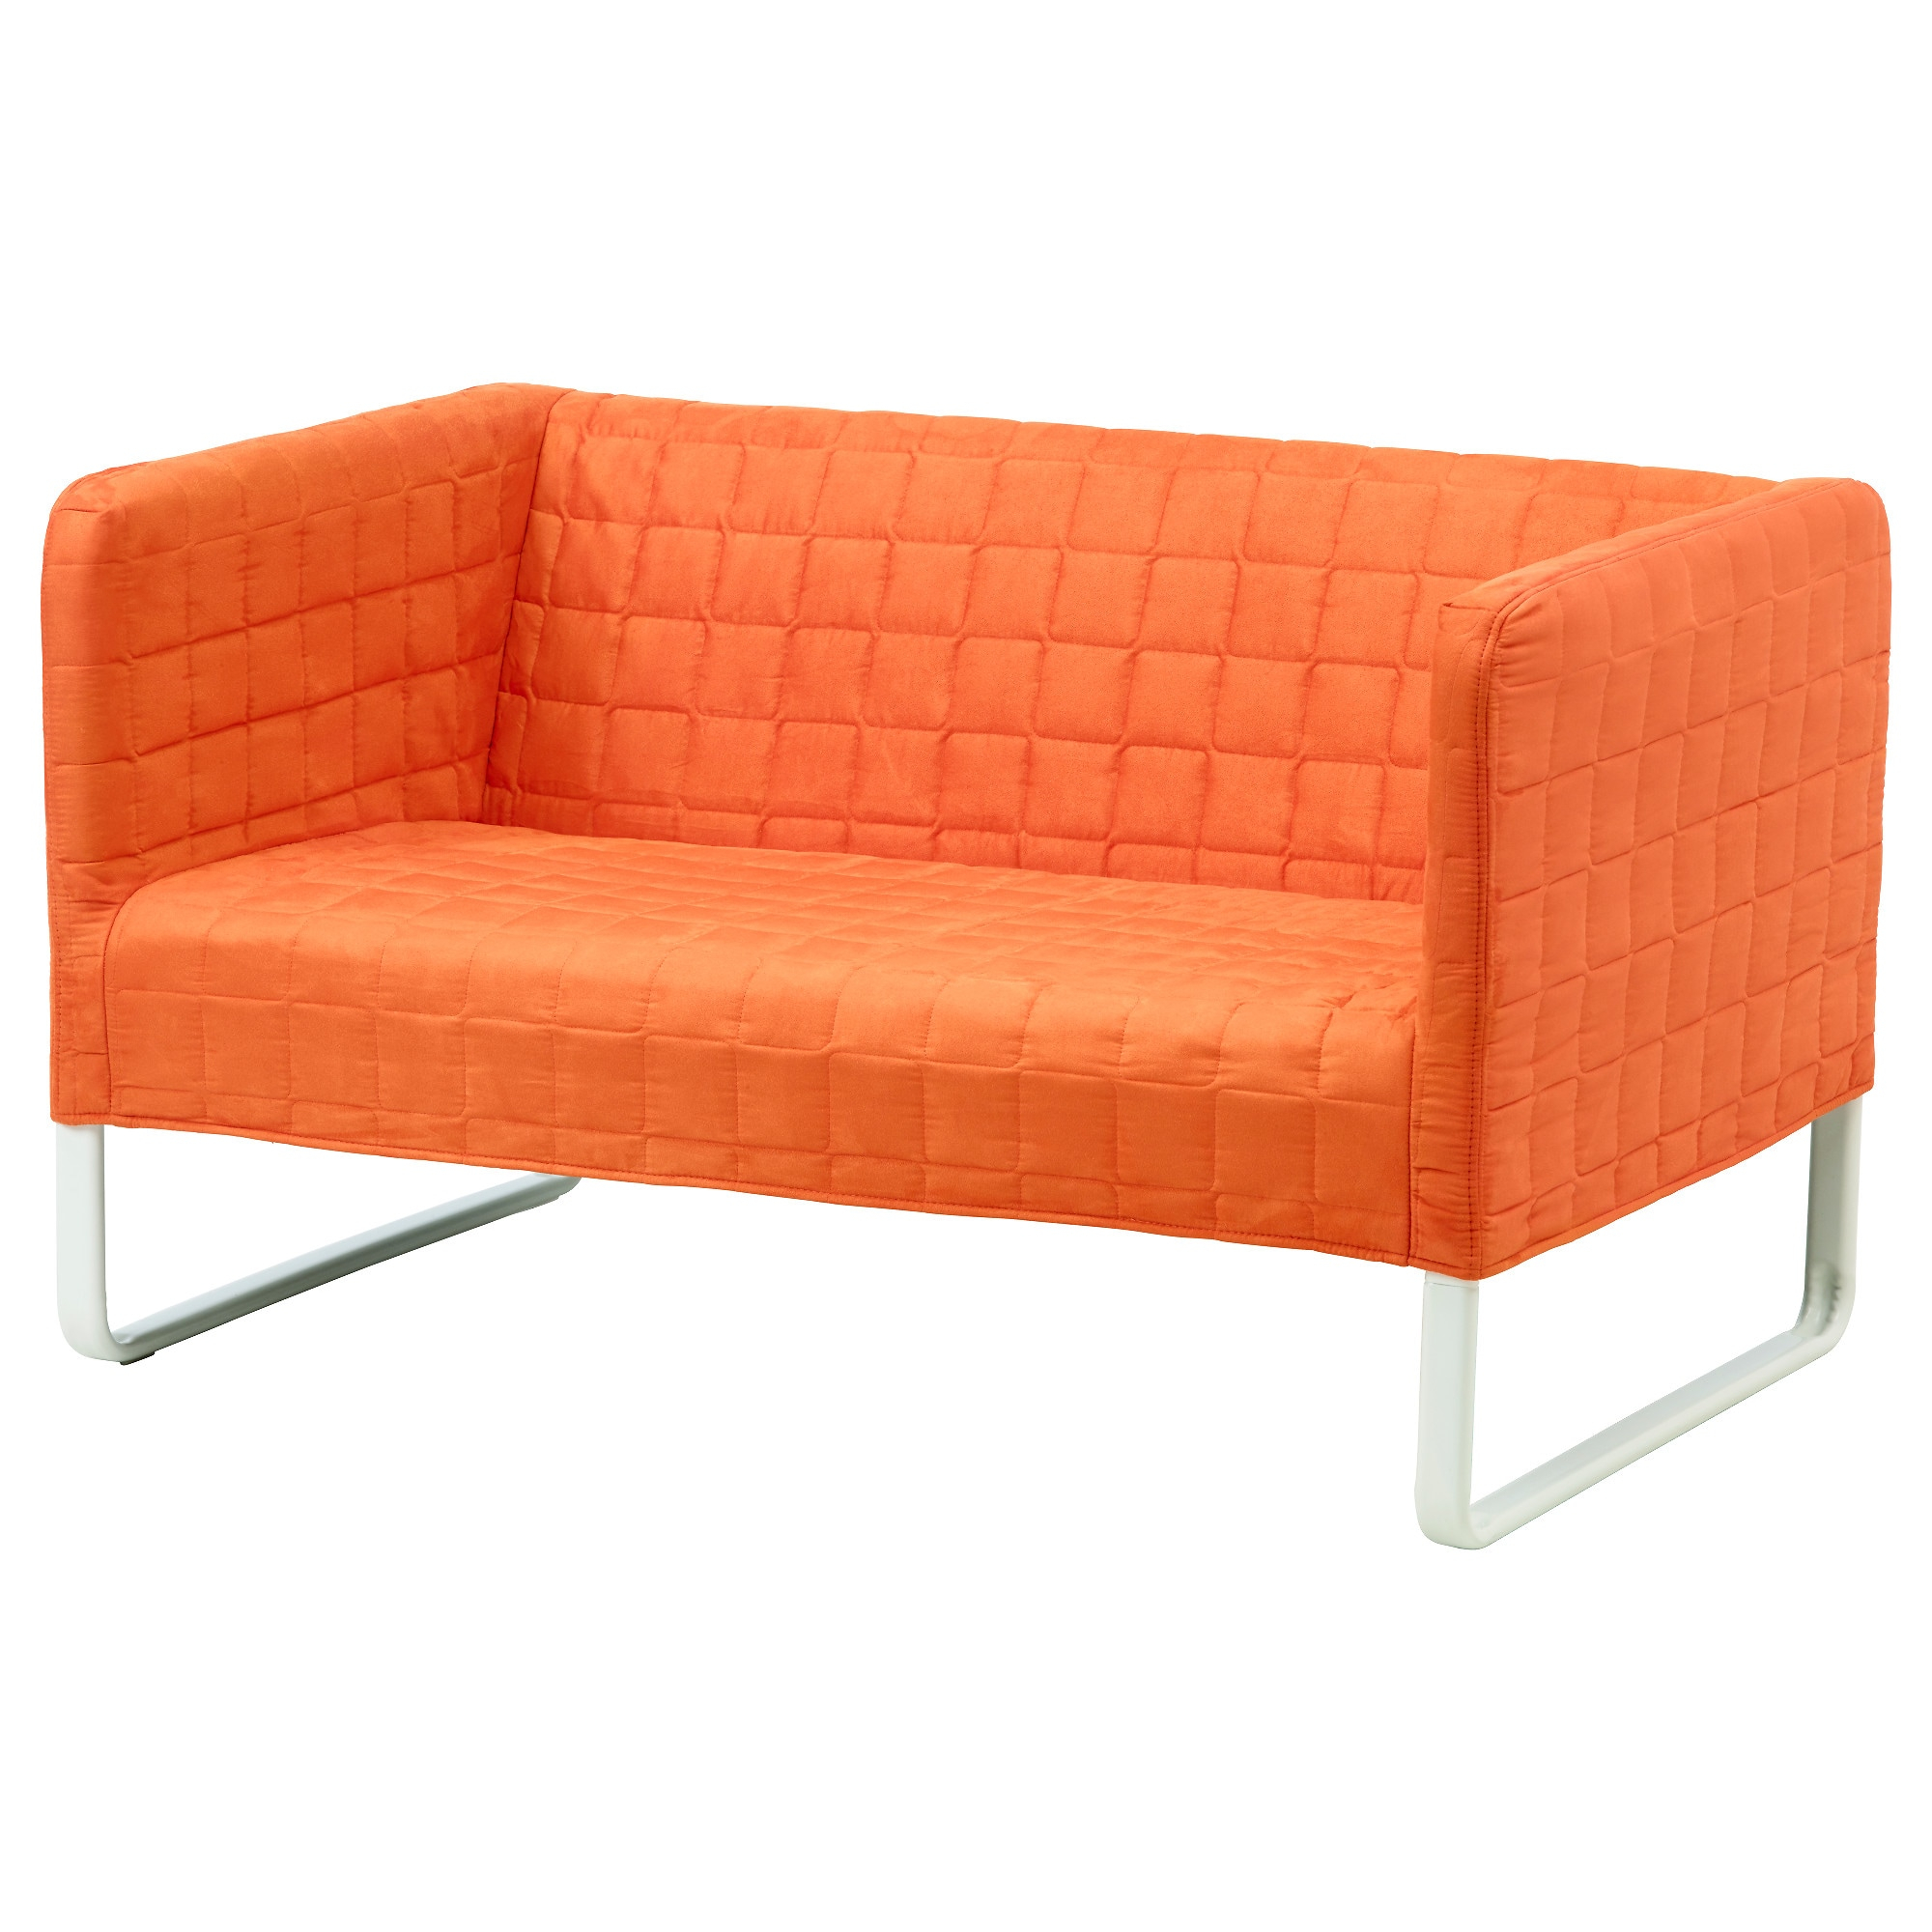 Fabric Sofas | Ikea With Regard To Ikea Sofa Chairs (Image 6 of 25)